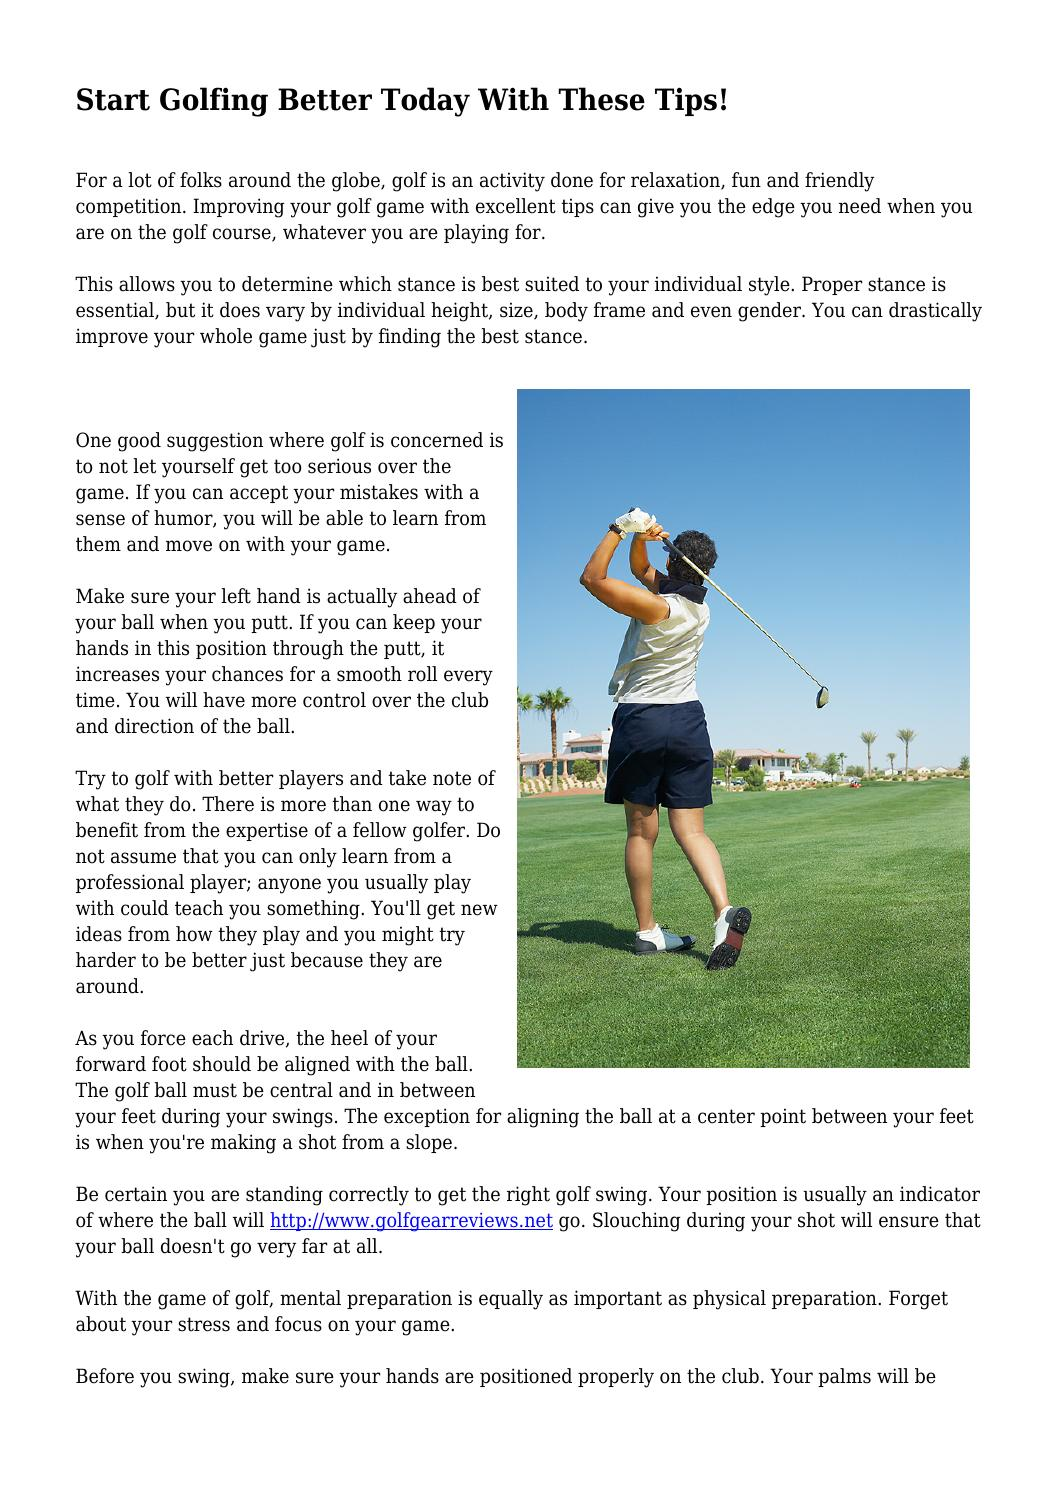 Start Golfing Better Today With These Tips! by destinybest17